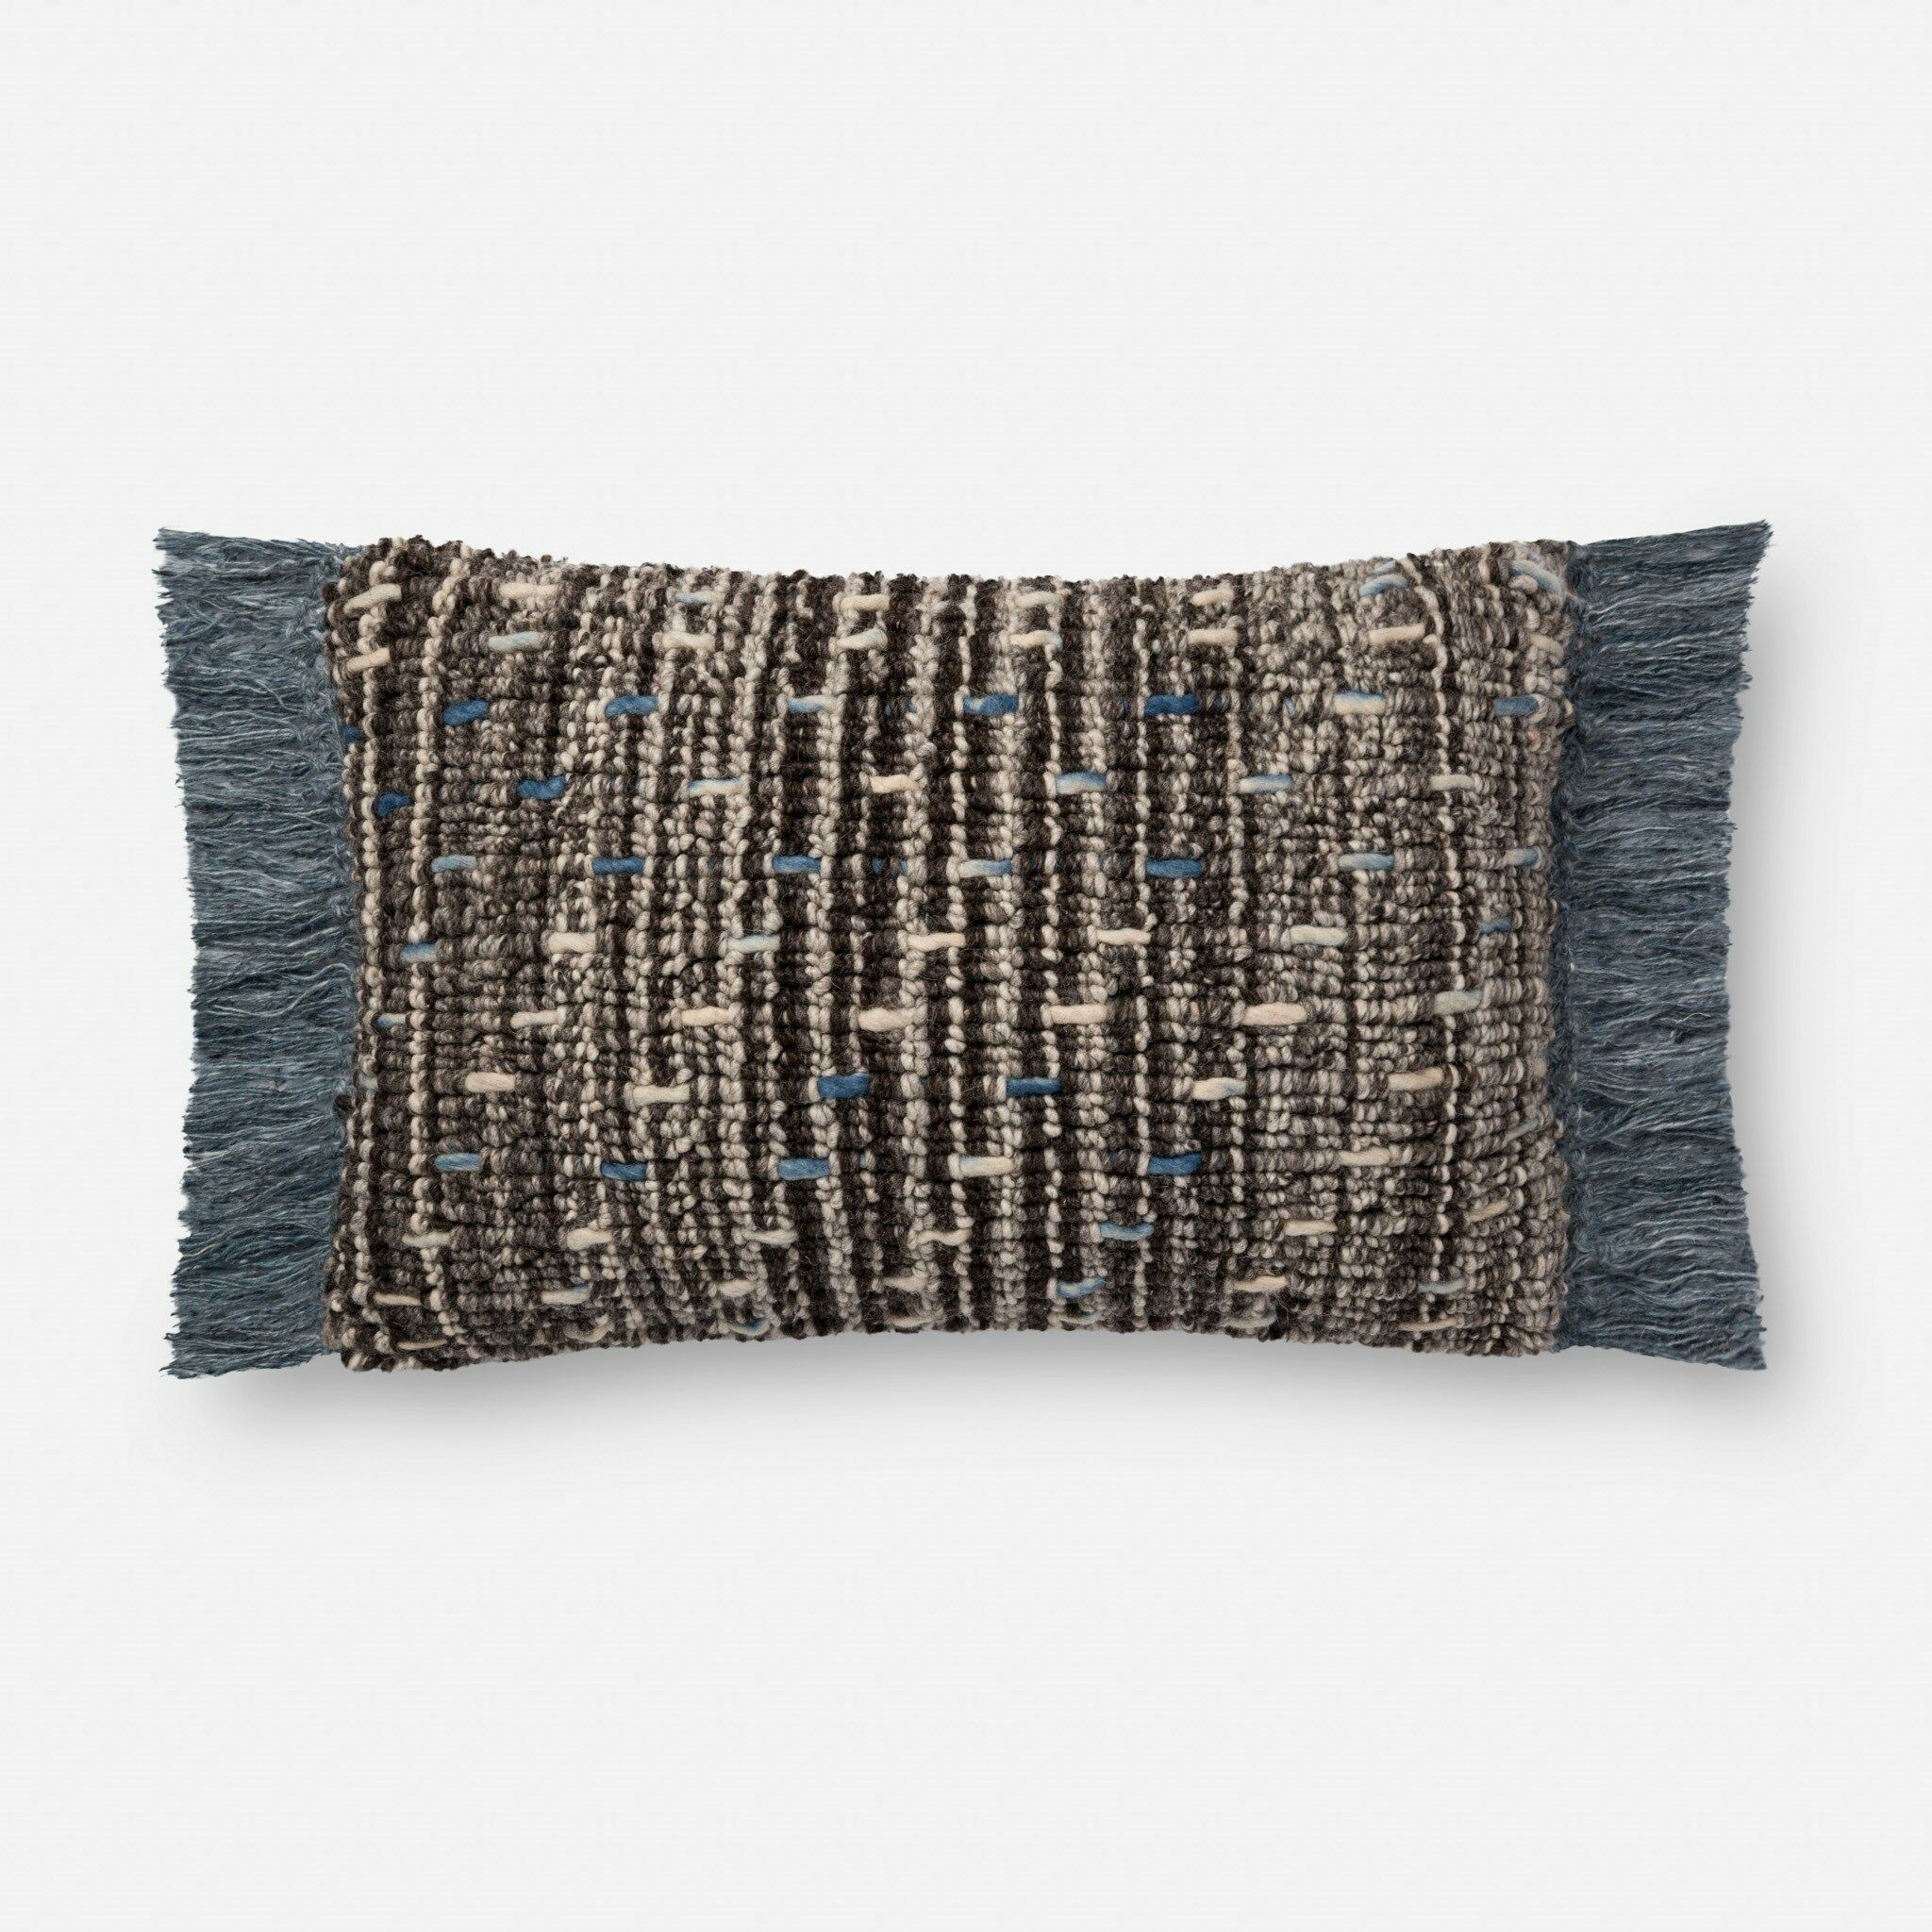 Dyson Pillow Fill Material: Down/Feather